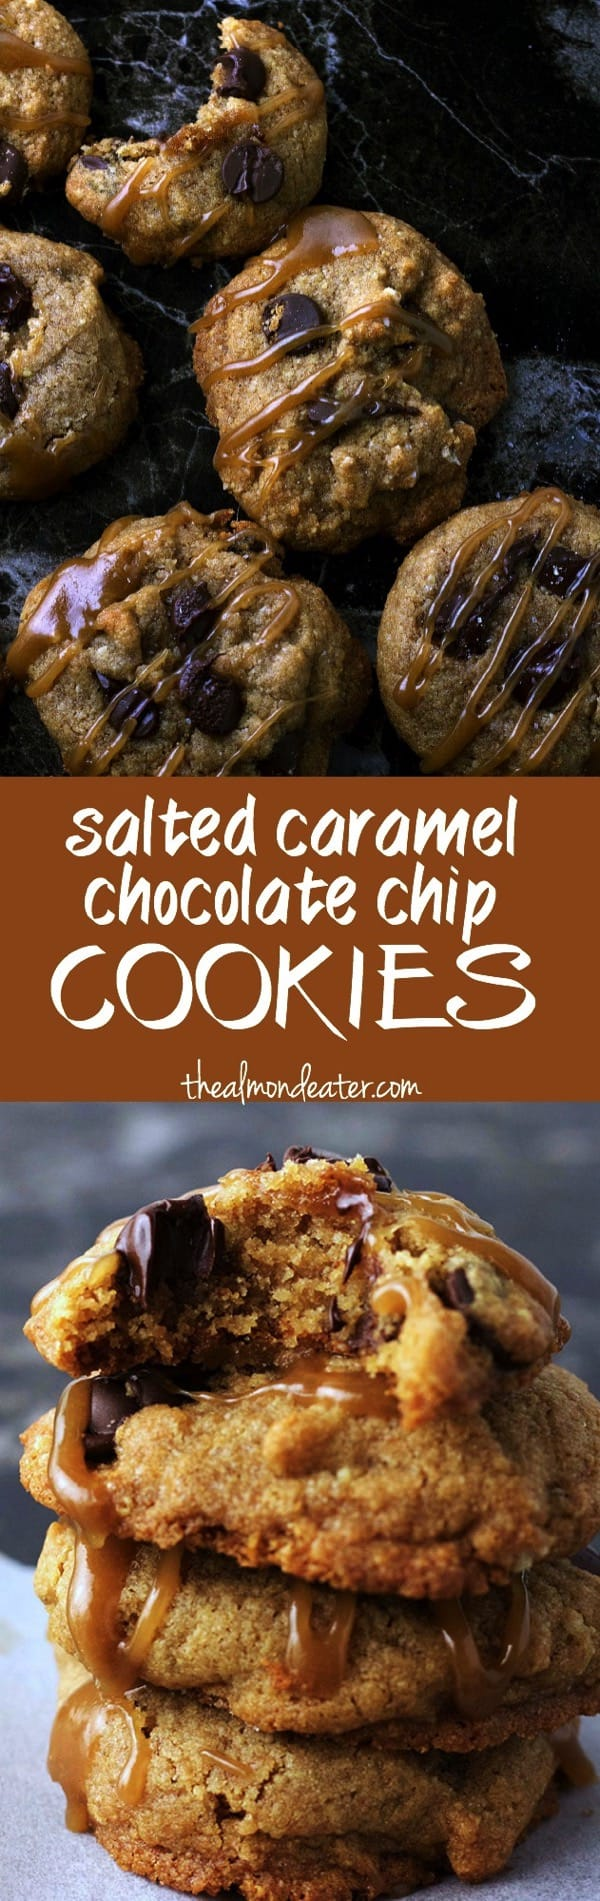 Healthy Salted Caramel Chocolate Chip Cookies | Gluten free cookies with a HEALTH caramel sauce drizzle | thealmondeater.com